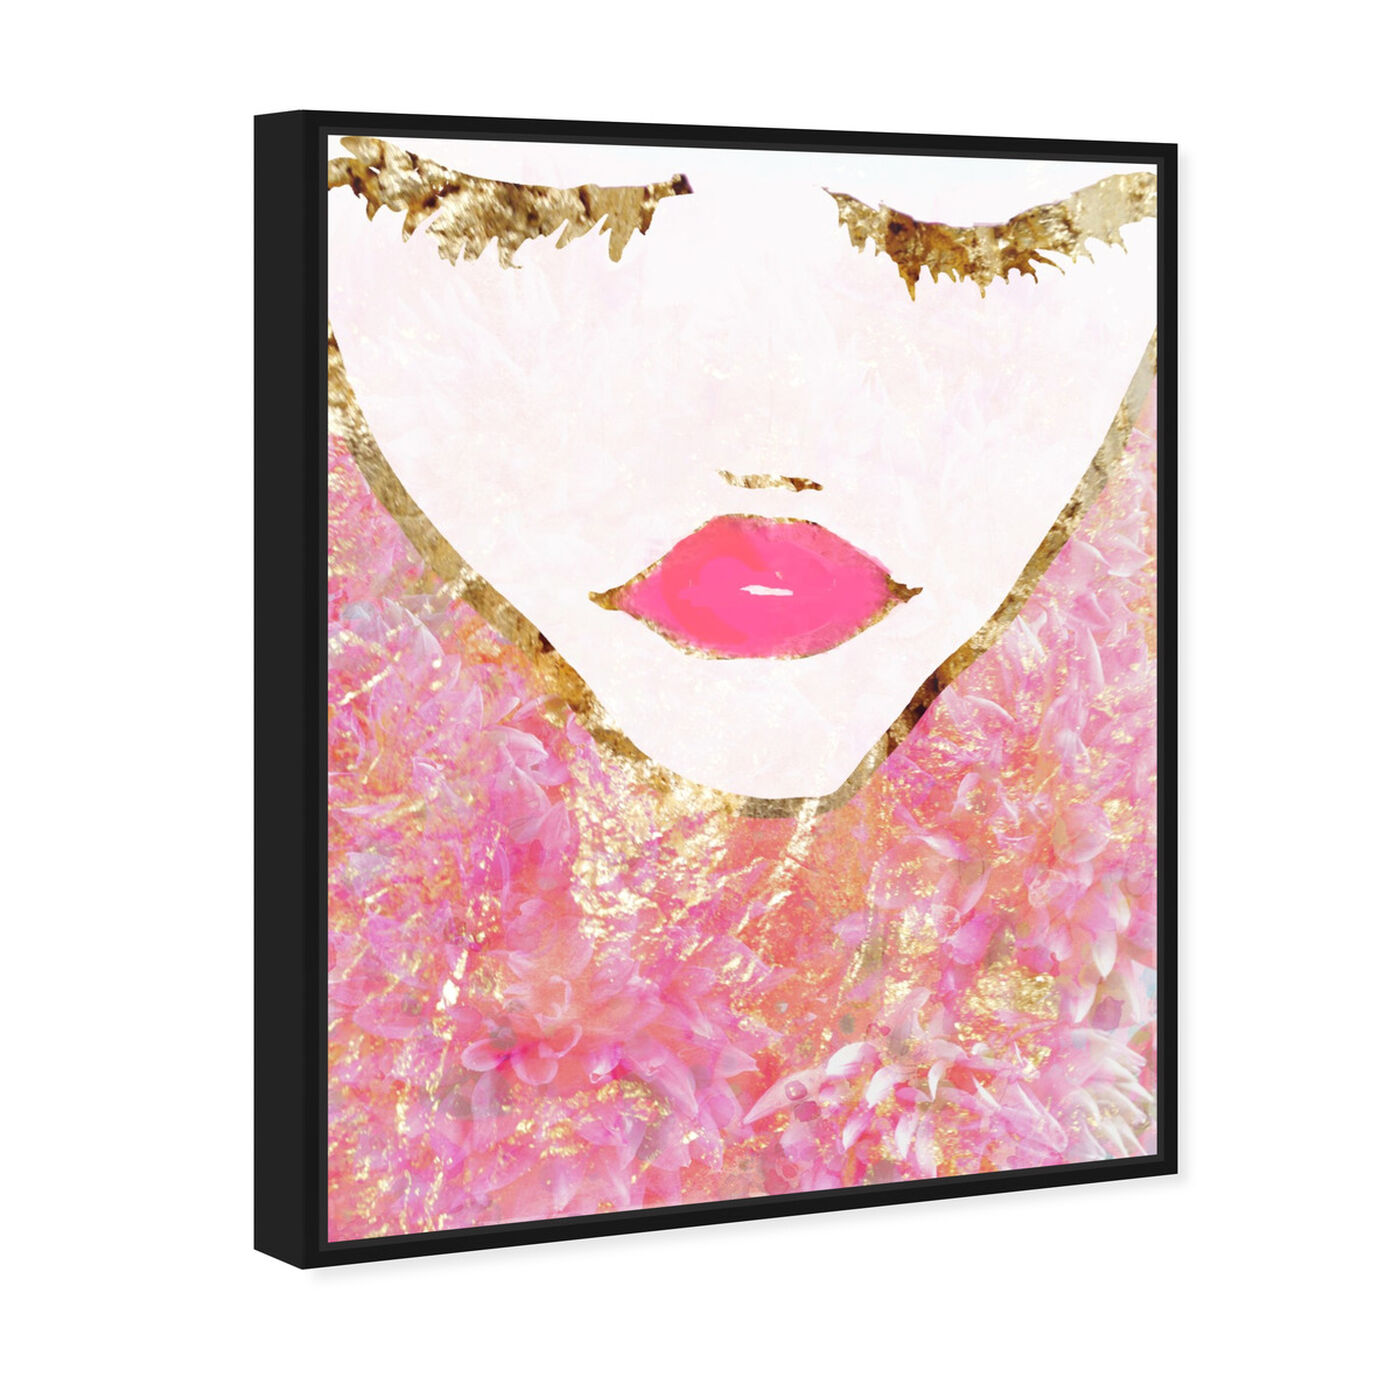 Angled view of Goldbloom Coveted featuring fashion and glam and portraits art.